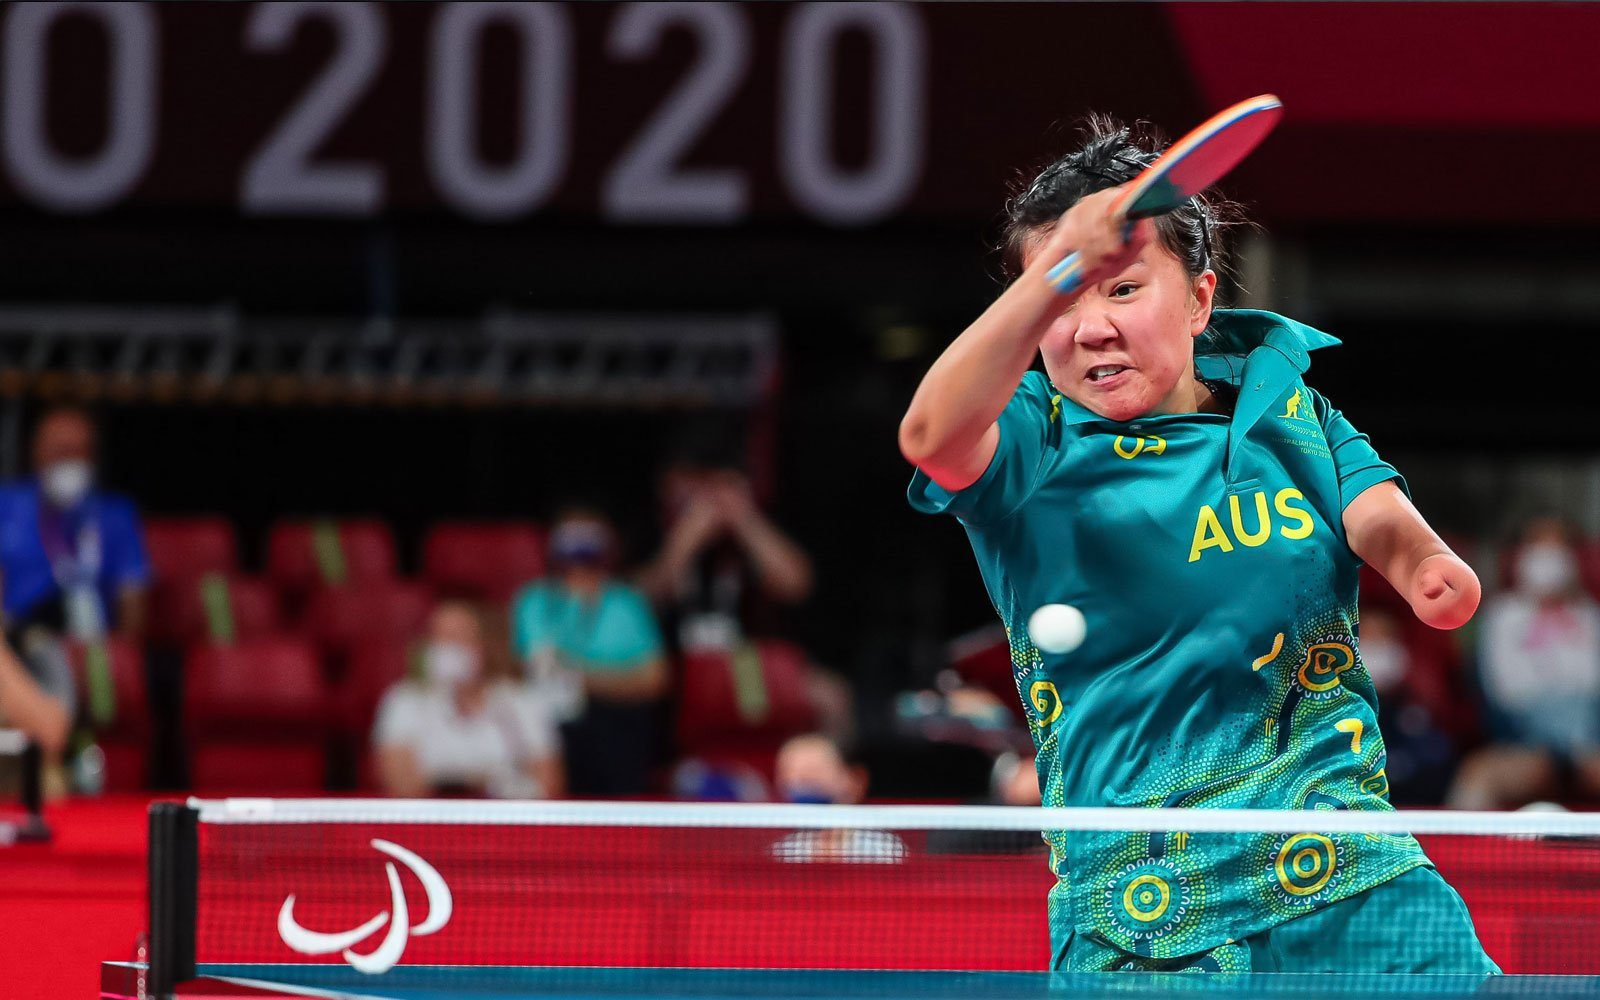 Big wins on opening day of Para-table tennis in Tokyo